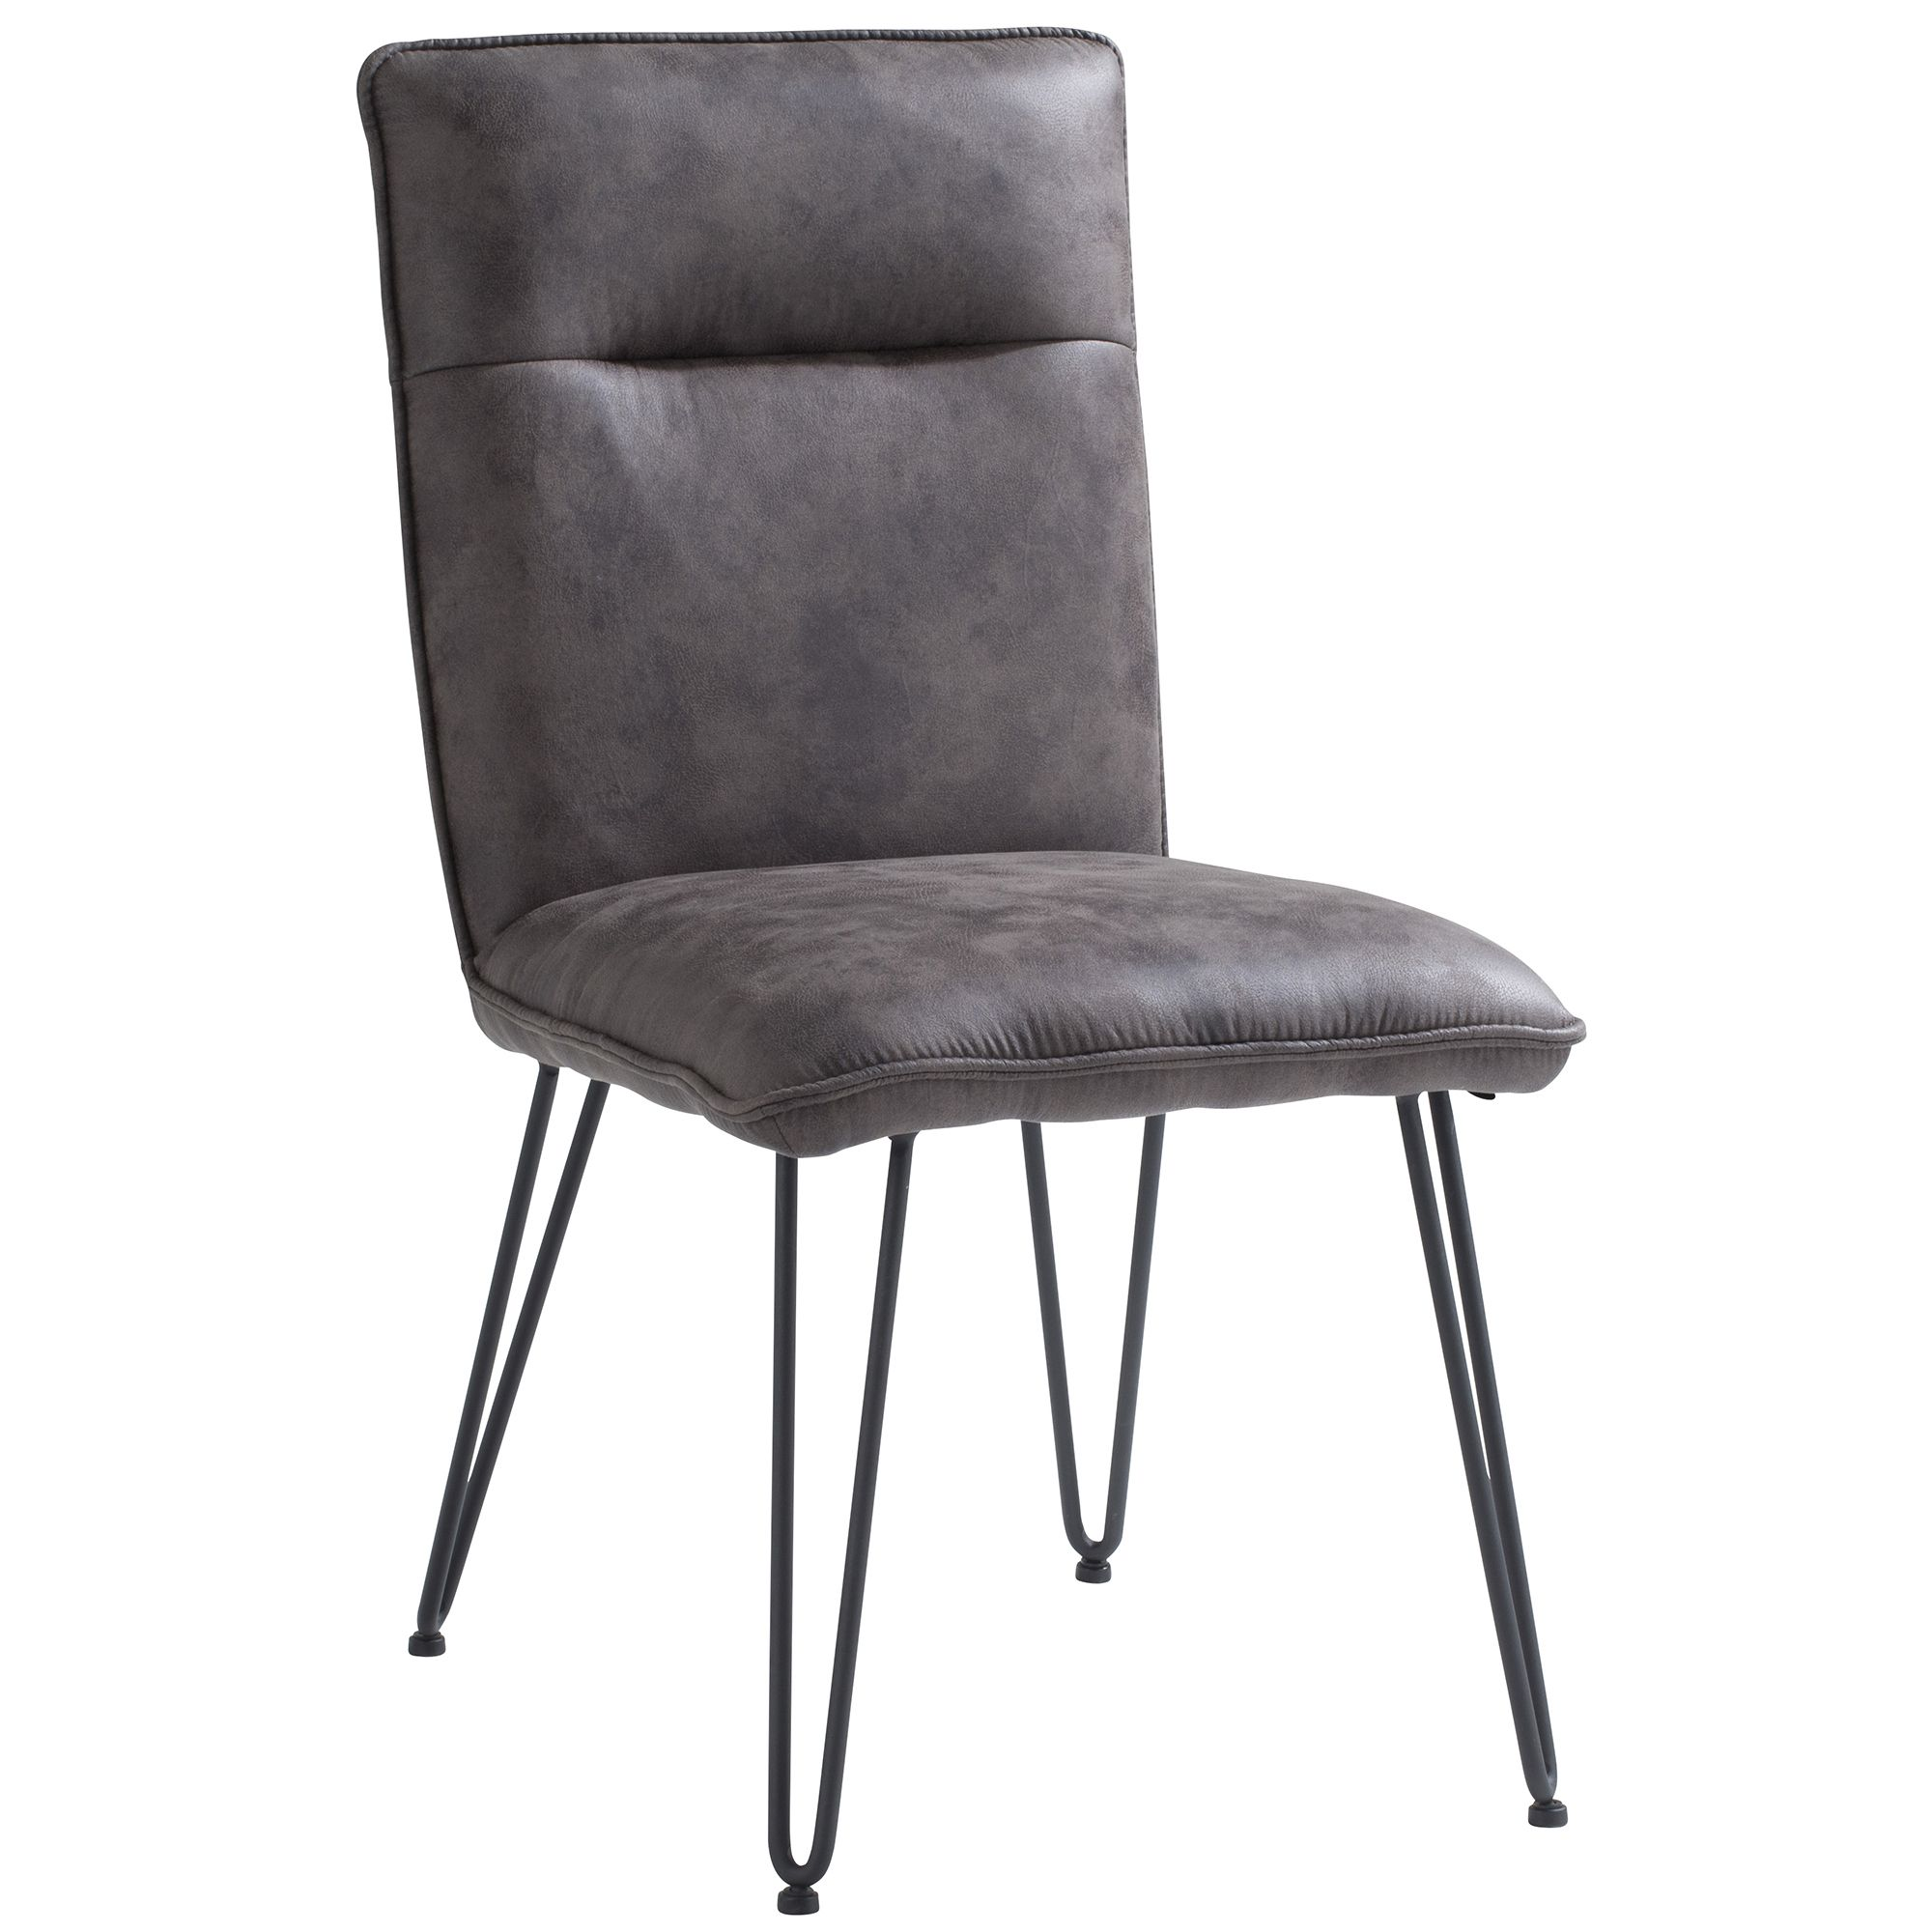 Chaise Grise Capitonnee Salle A Manger Salle A Manger Grise Chaise Grise Chaise Capitonnee